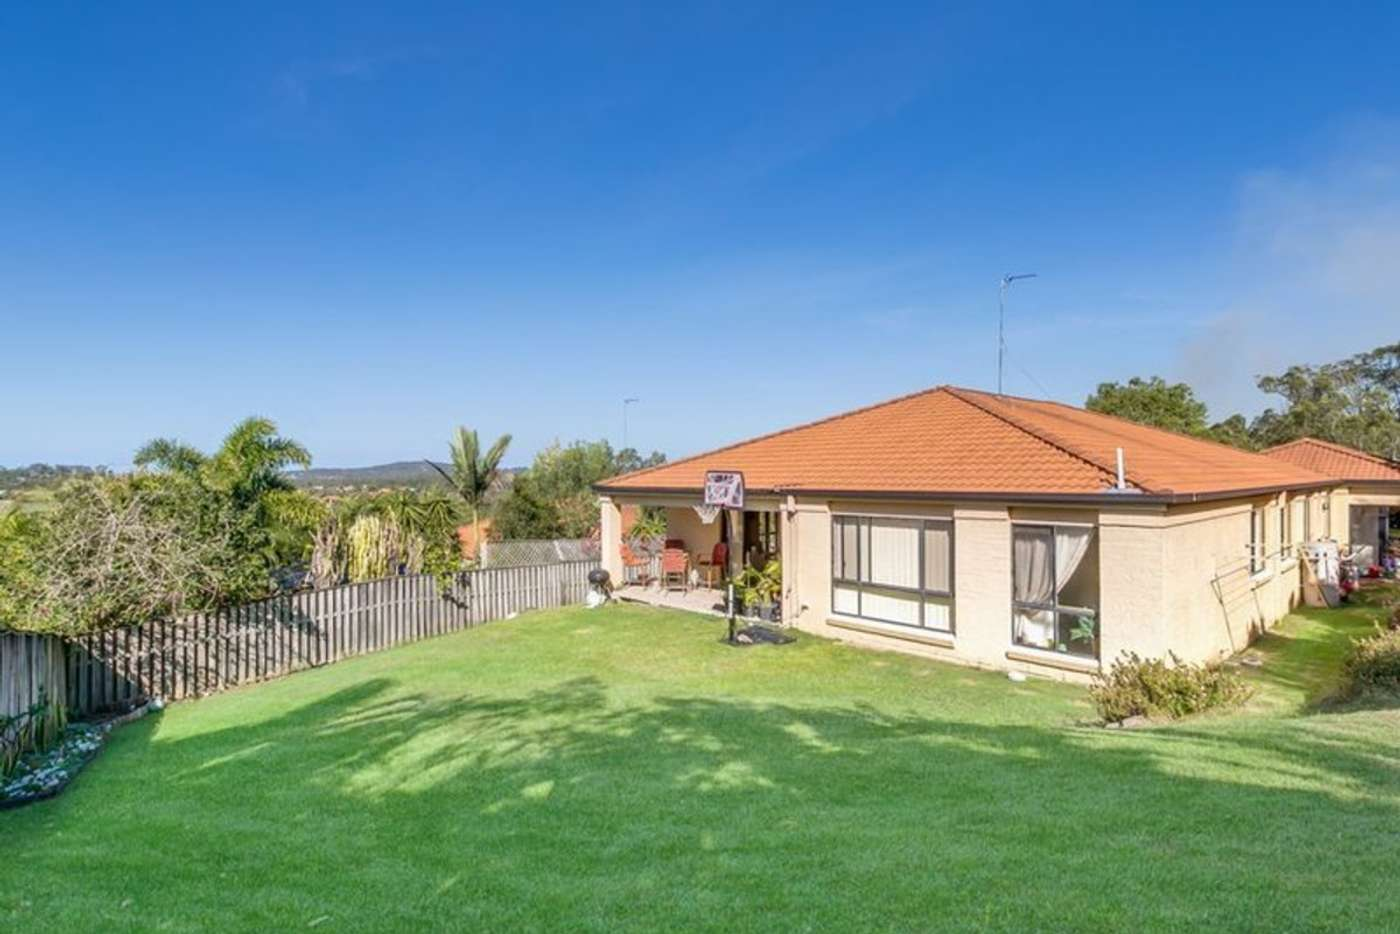 Main view of Homely house listing, 83 Santa Isobel Boulevard, Pacific Pines QLD 4211